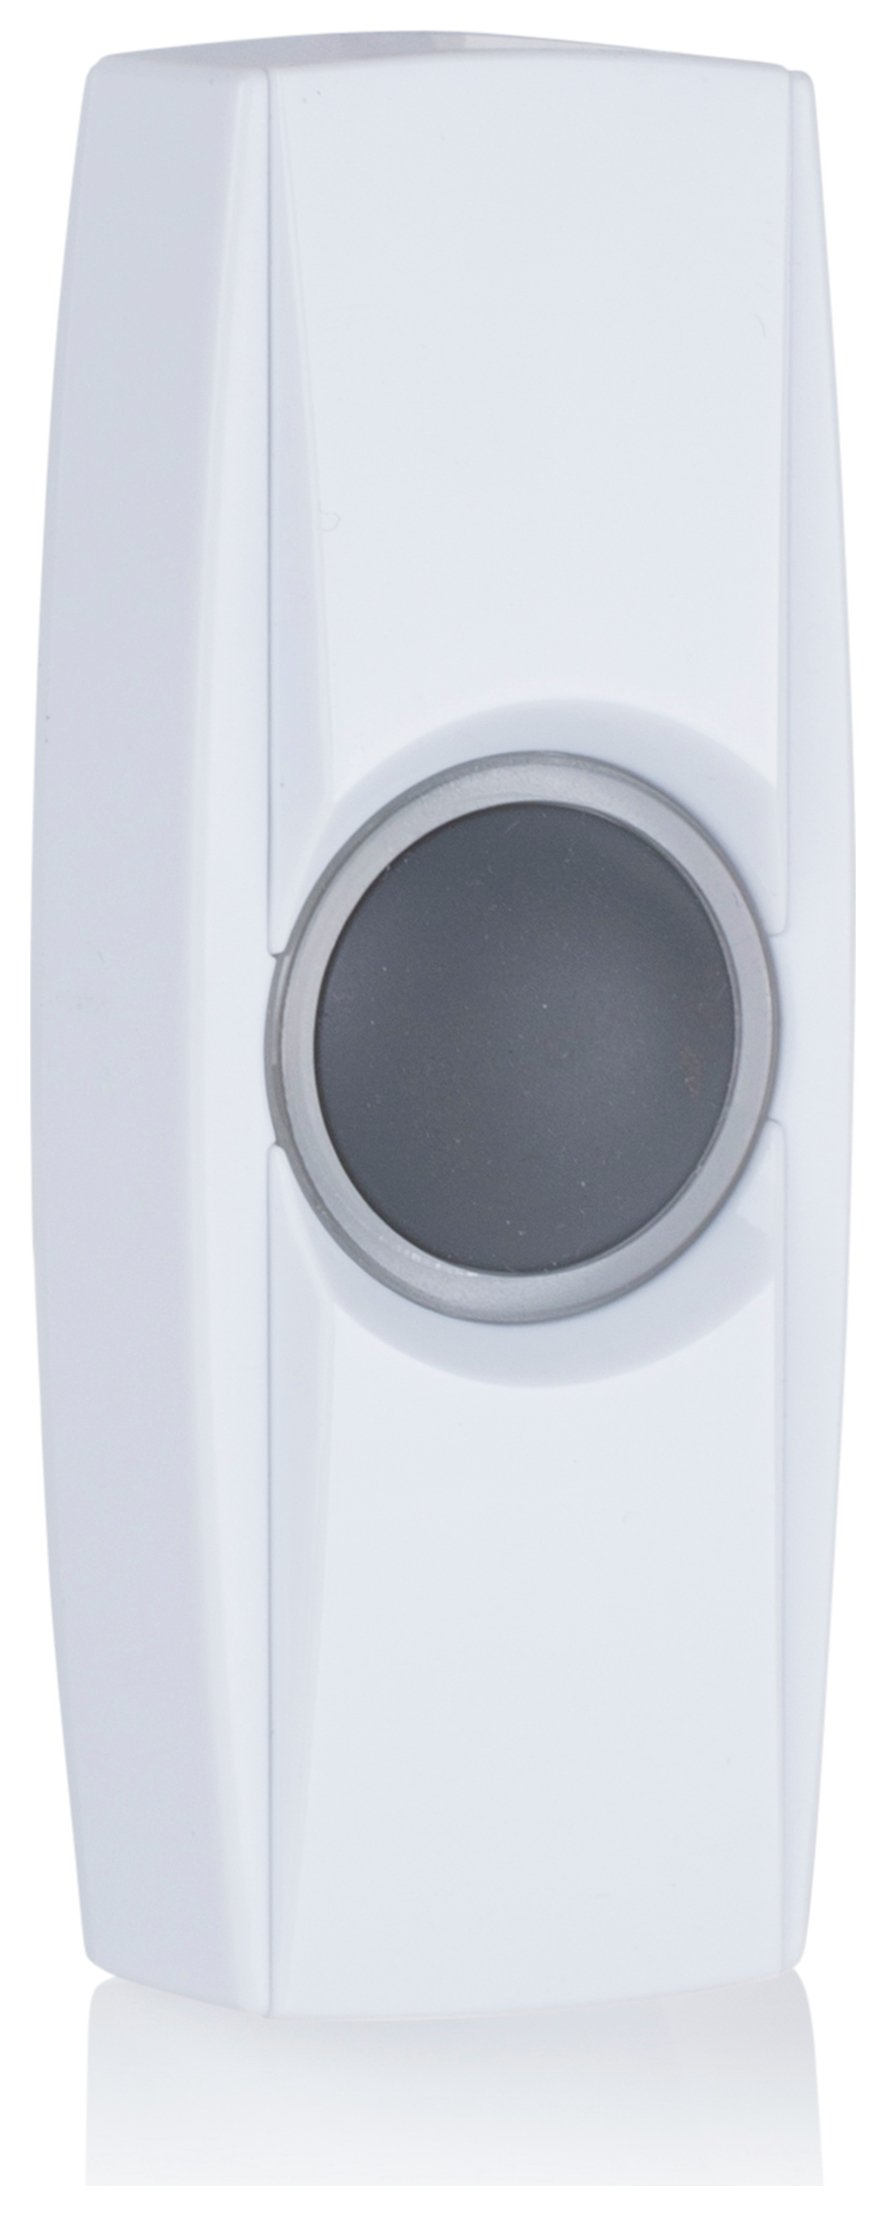 Image of Byron BY34 Wireless Doorbell Additional Chime Nightglow Push